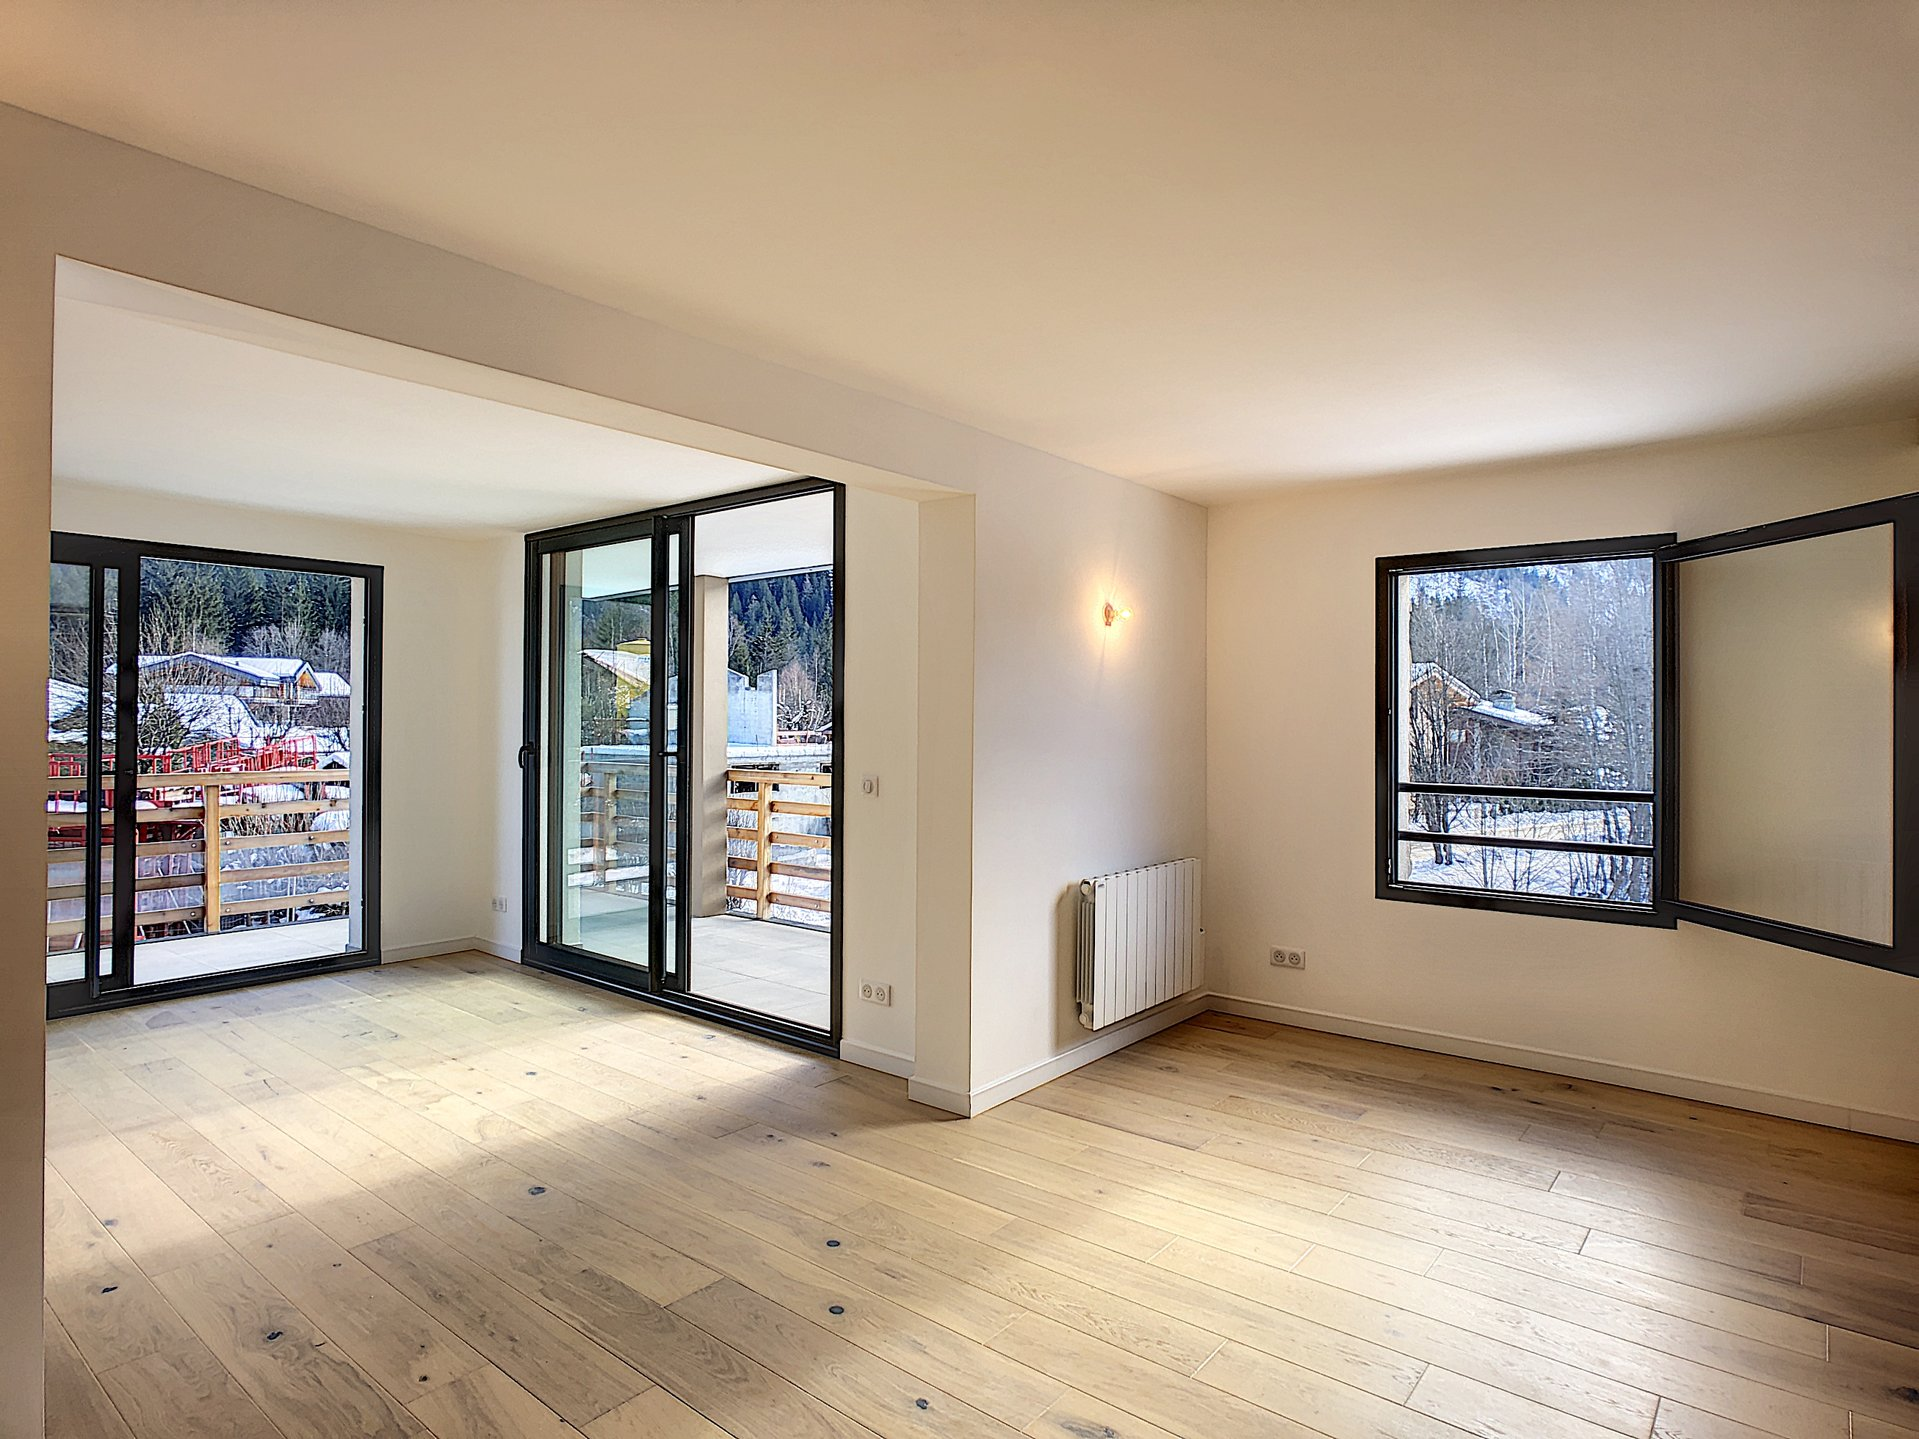 3 bedroom apartment, Chamonix Mont-Blanc